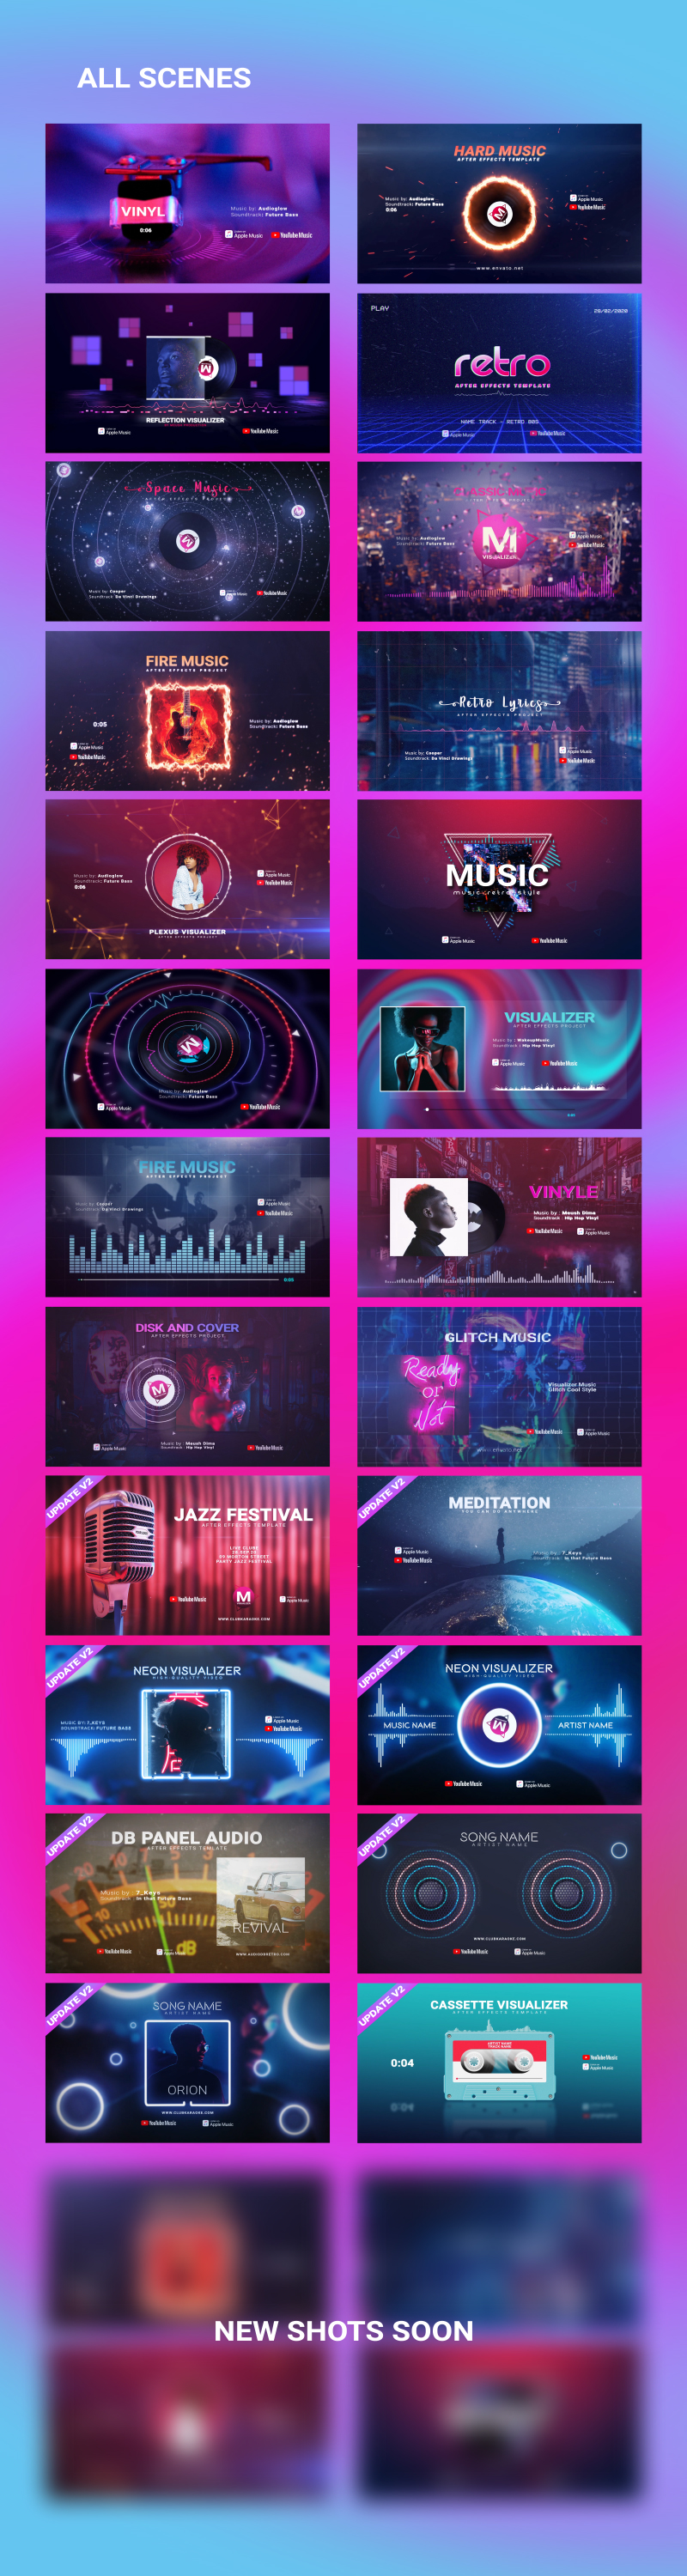 Music Visualizer Pack - 5